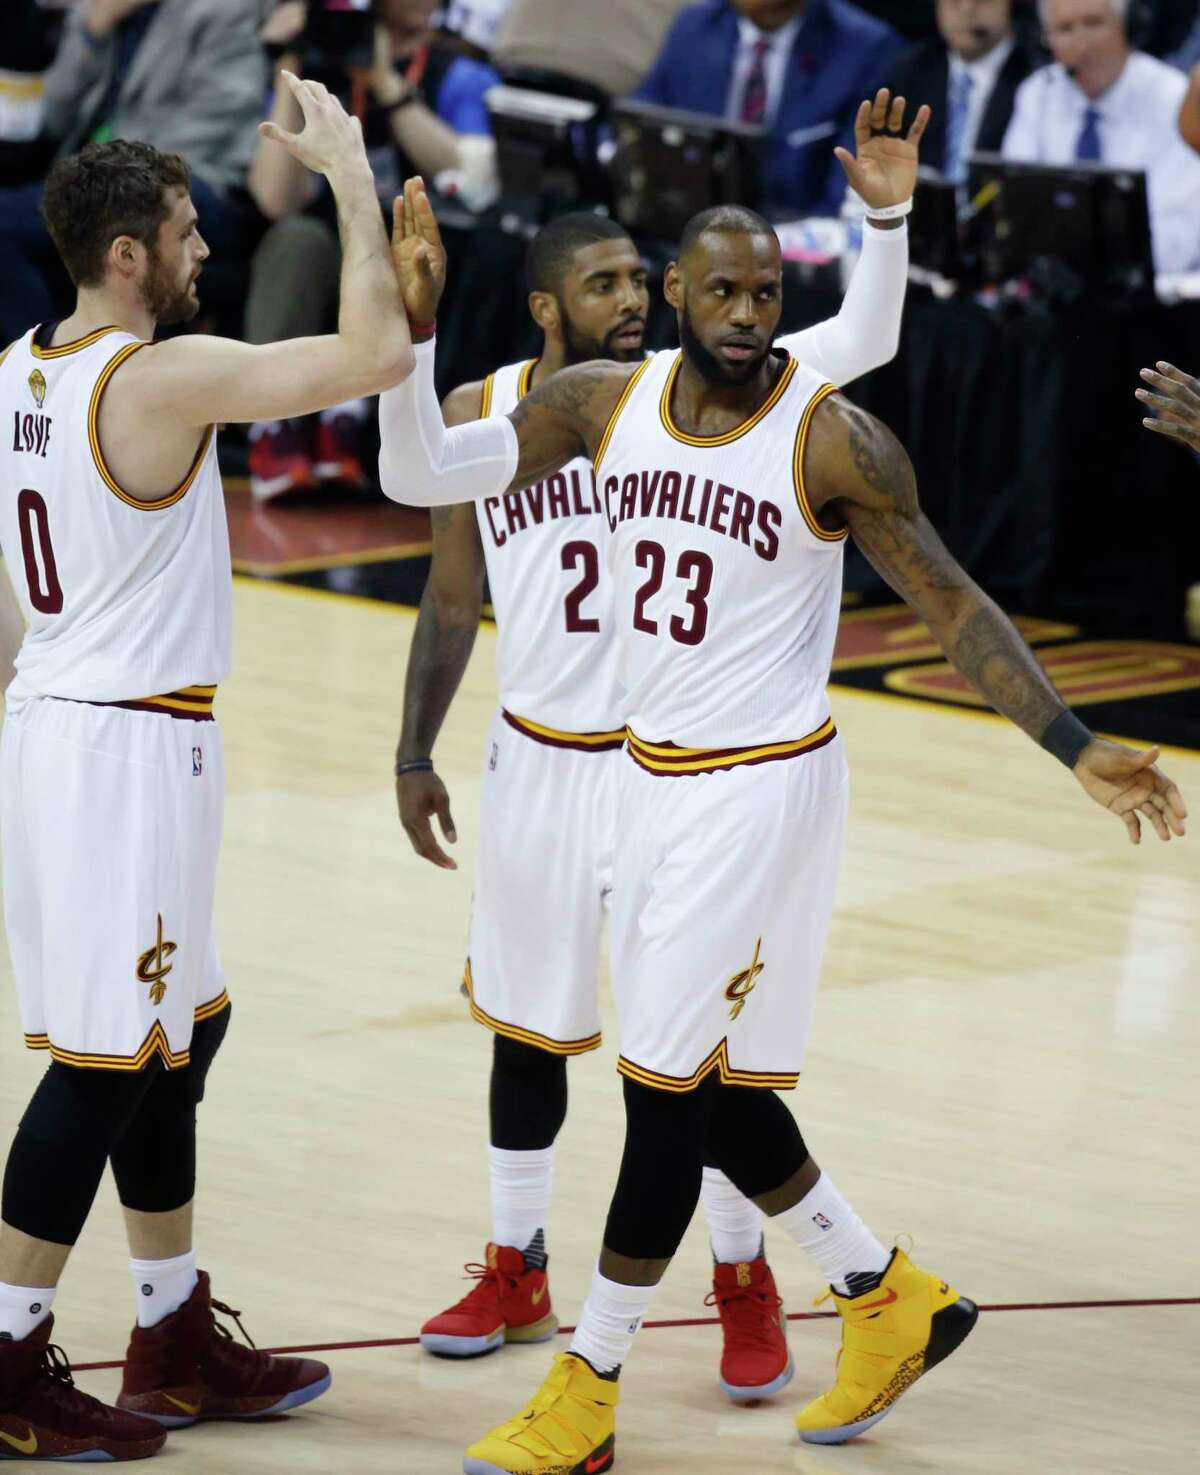 LeBron James (23), Kevin Love (0) and Kyrie Irving live to fight another day after pulling together to help the Cavaliers rout the Warriors 137-116 in Game 4.